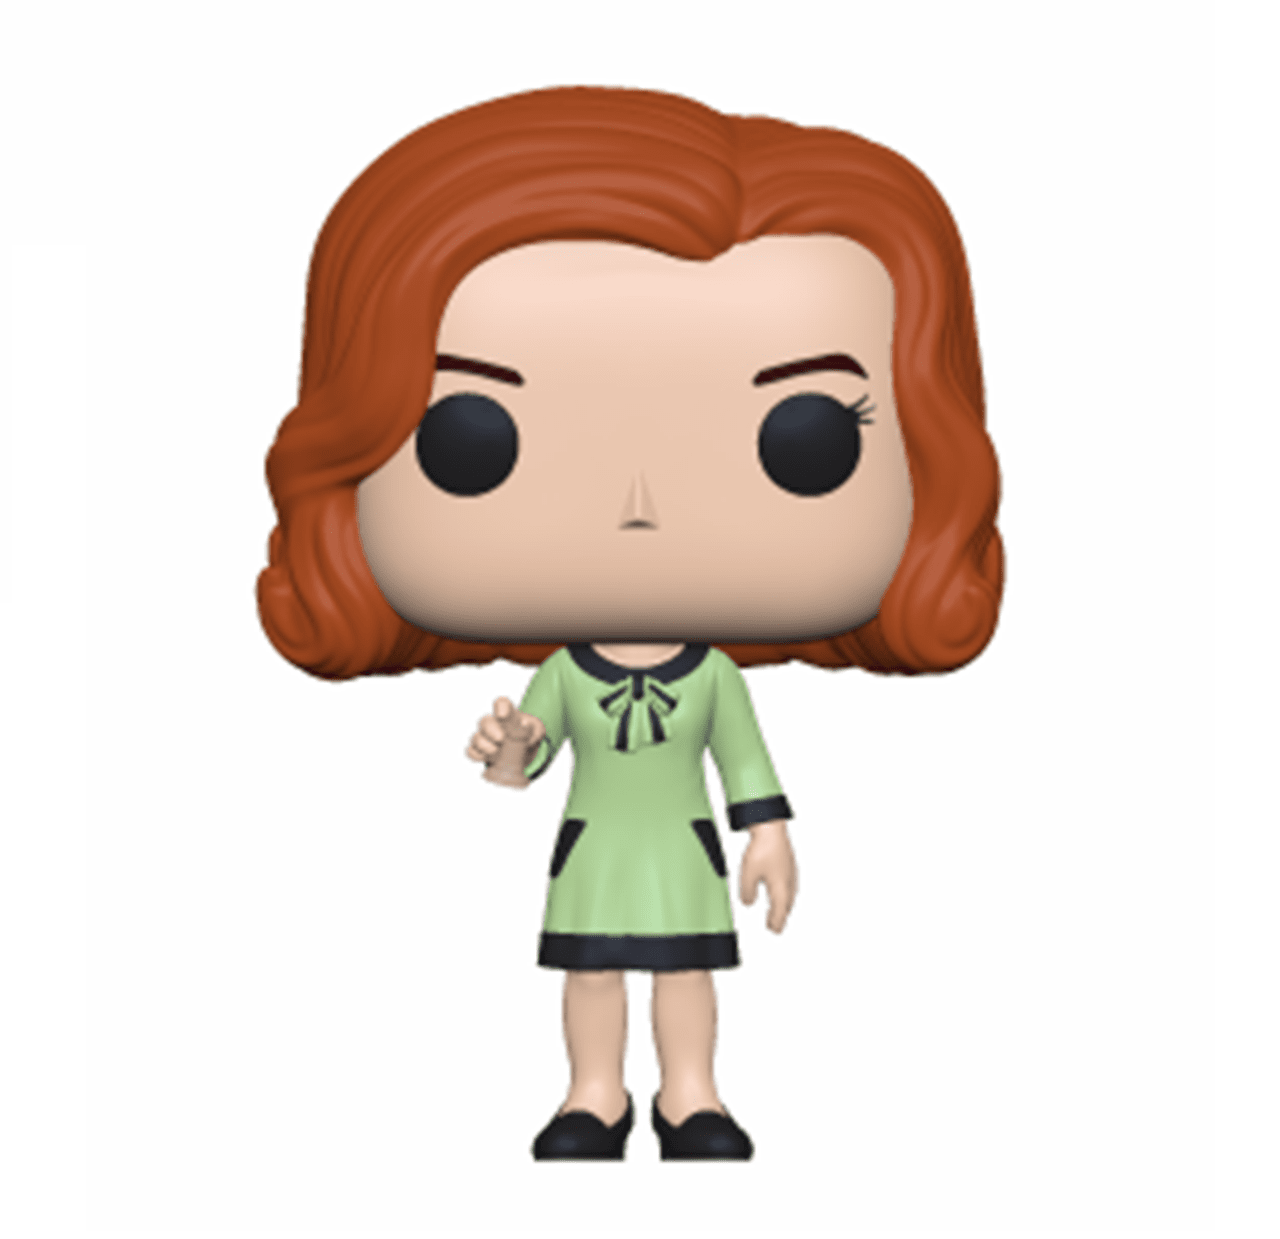 Beth Harmon: The Queen's Gambit Pop Vinyl - 1